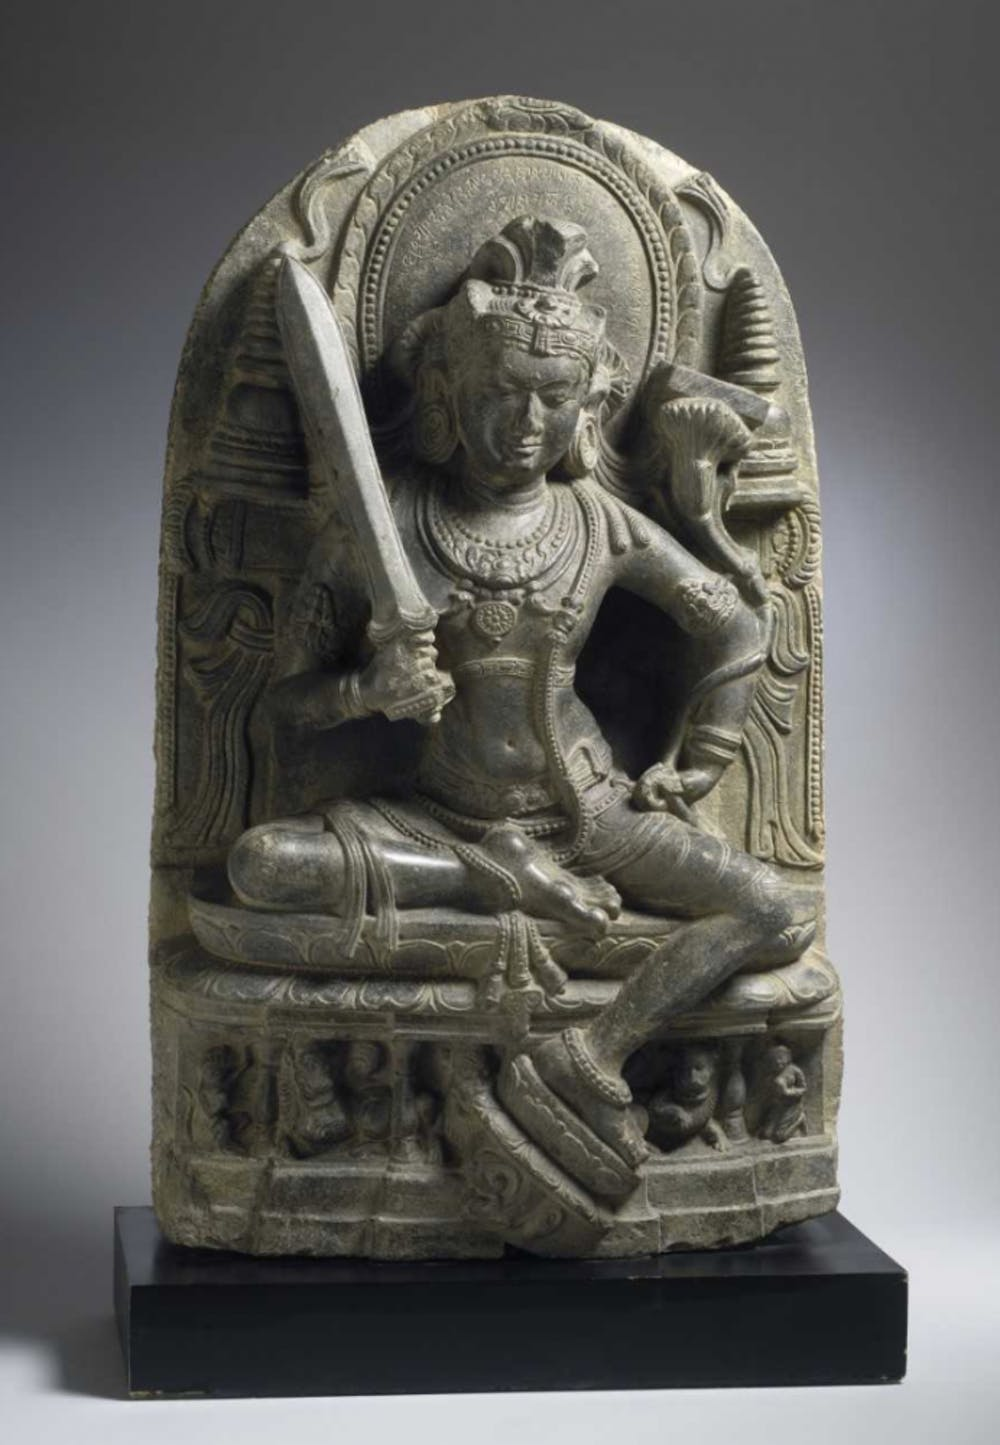 Stolen 10th century sculpture repatriated to India after years at the Ackland